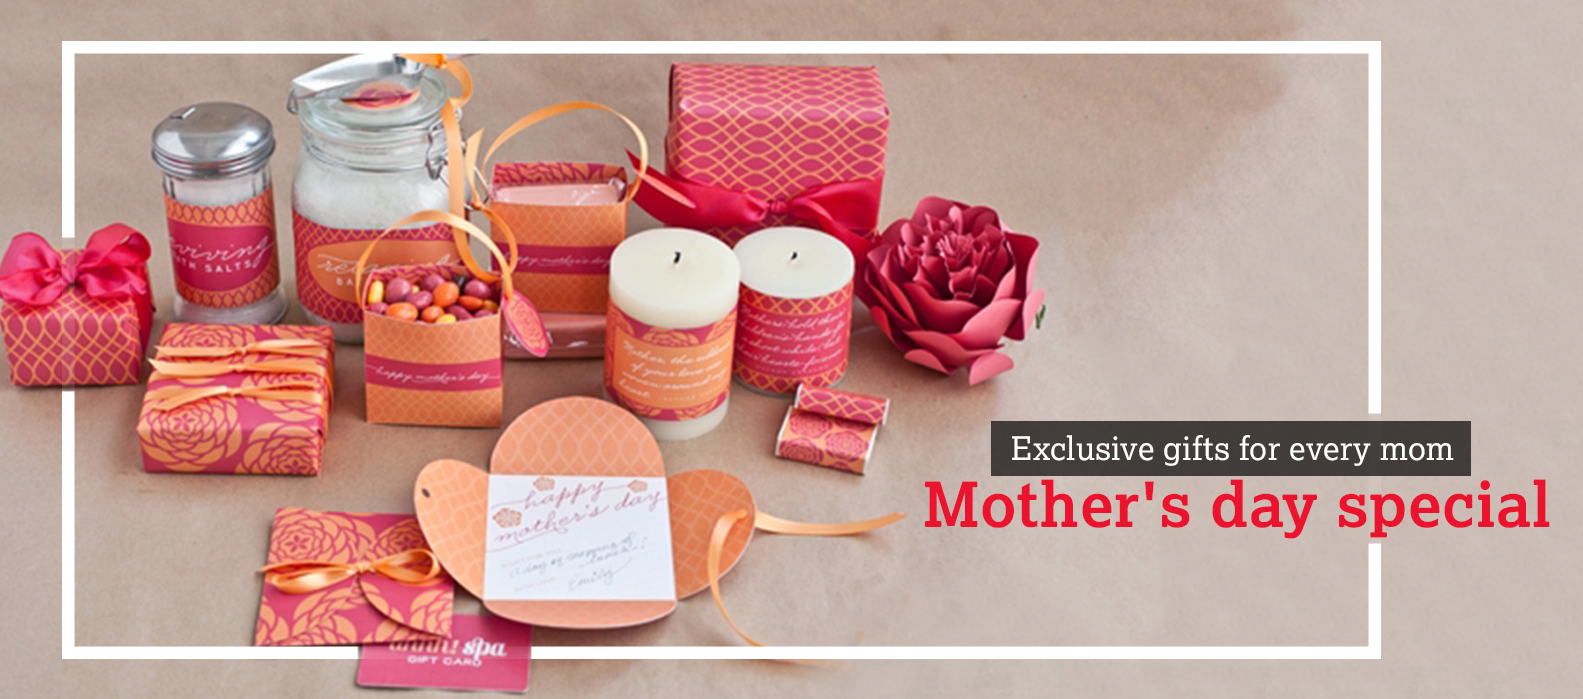 Exclusive gifts for Mother's day- Mother's day special